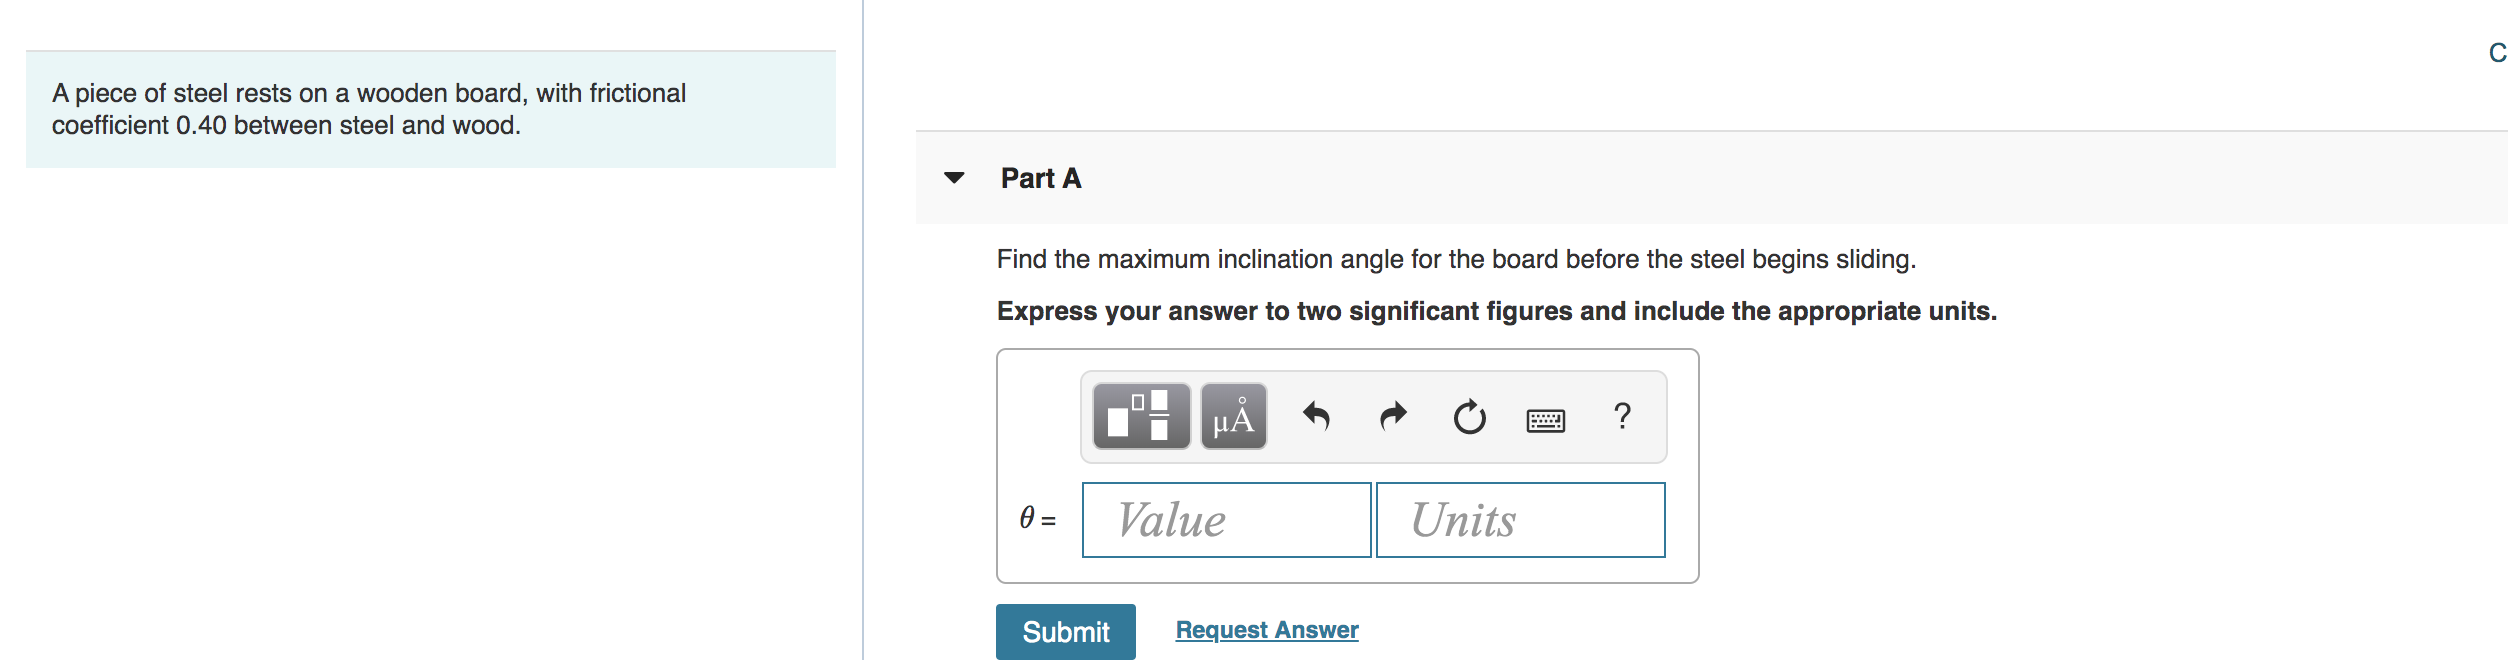 C A piece of steel rests on a wOoden board, with frictional coefficient 0.40 between steel and wood. Part A Find the maximum inclination angle for the board before the steel begins sliding. Express your answer to two significant figures and include the appropriate units. ? HA Value Units 0 = Submit Request Answer